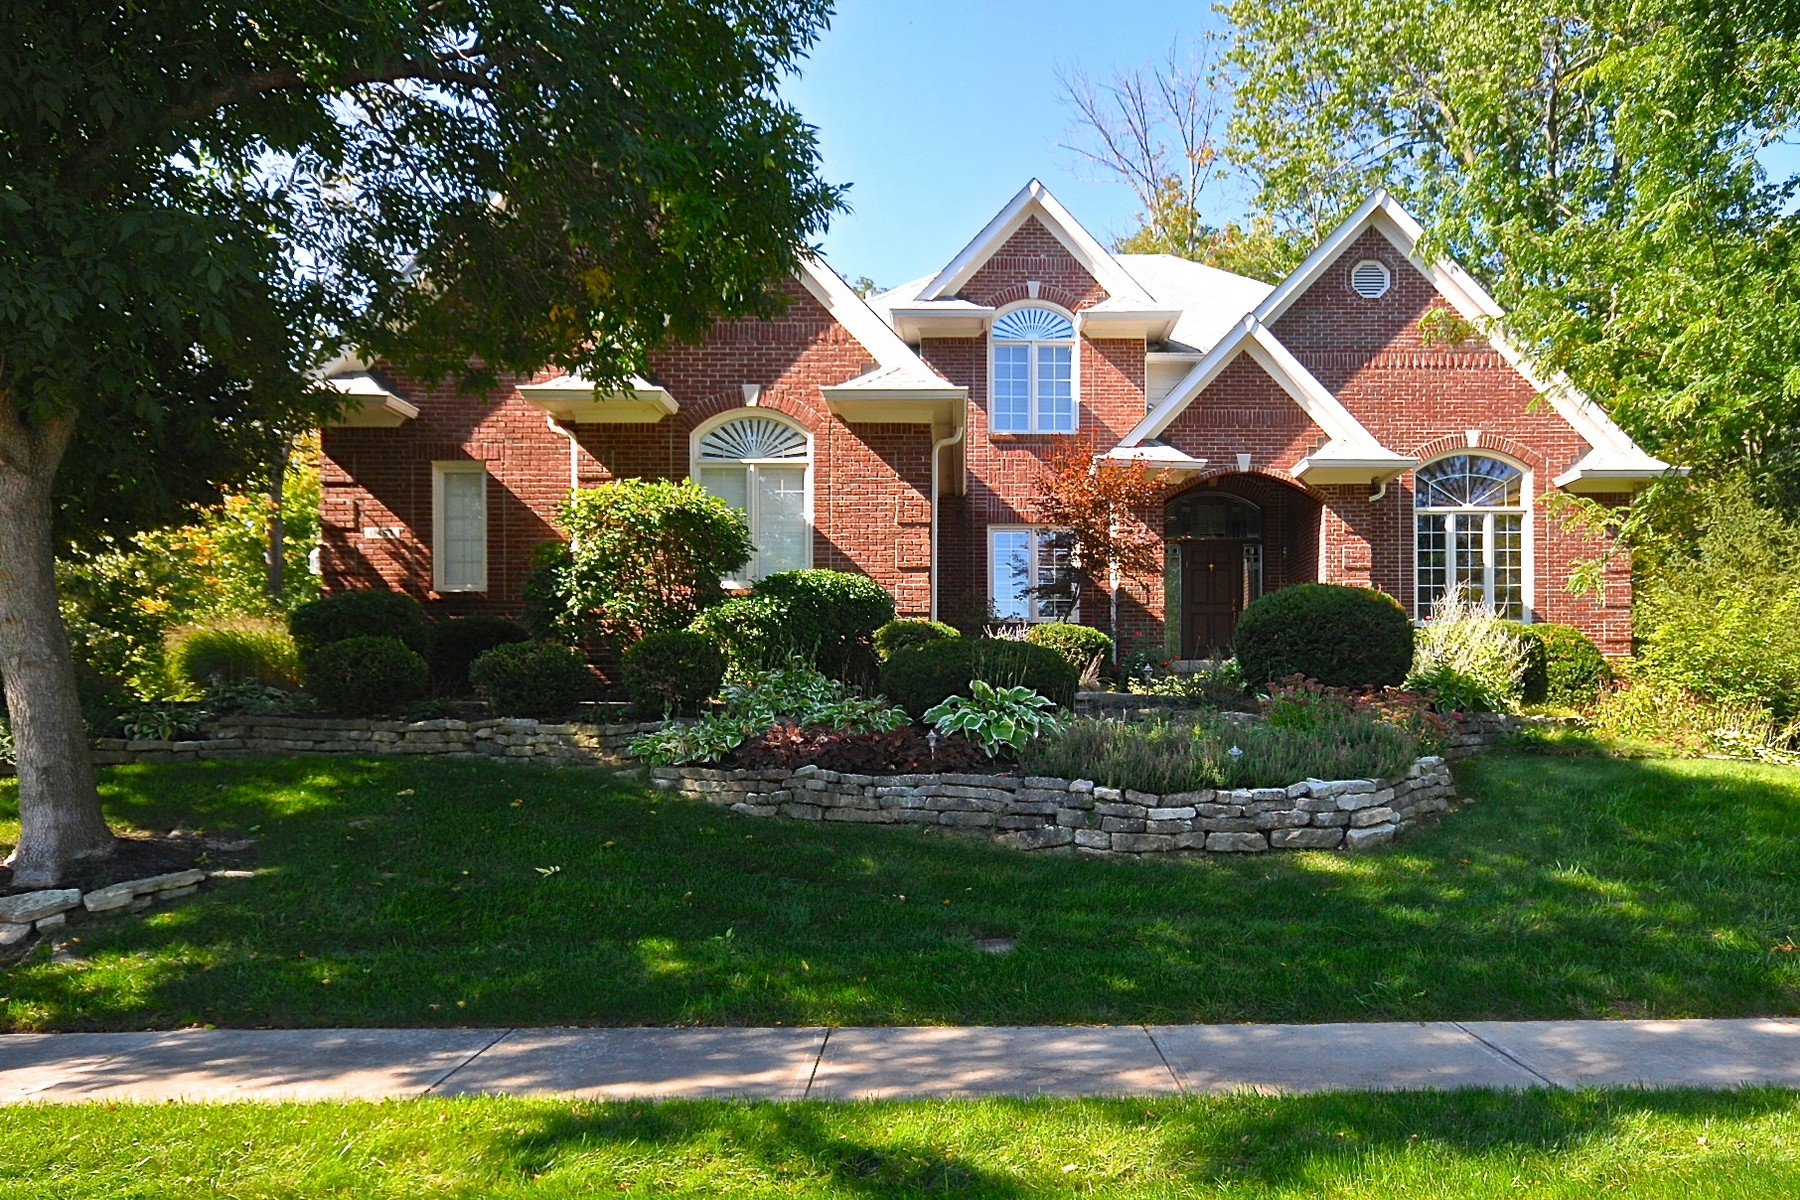 Single Family Home for Sale at The Gem of Admirals Sound 11467 Woods Bay Lane Indianapolis, Indiana 46236 United States